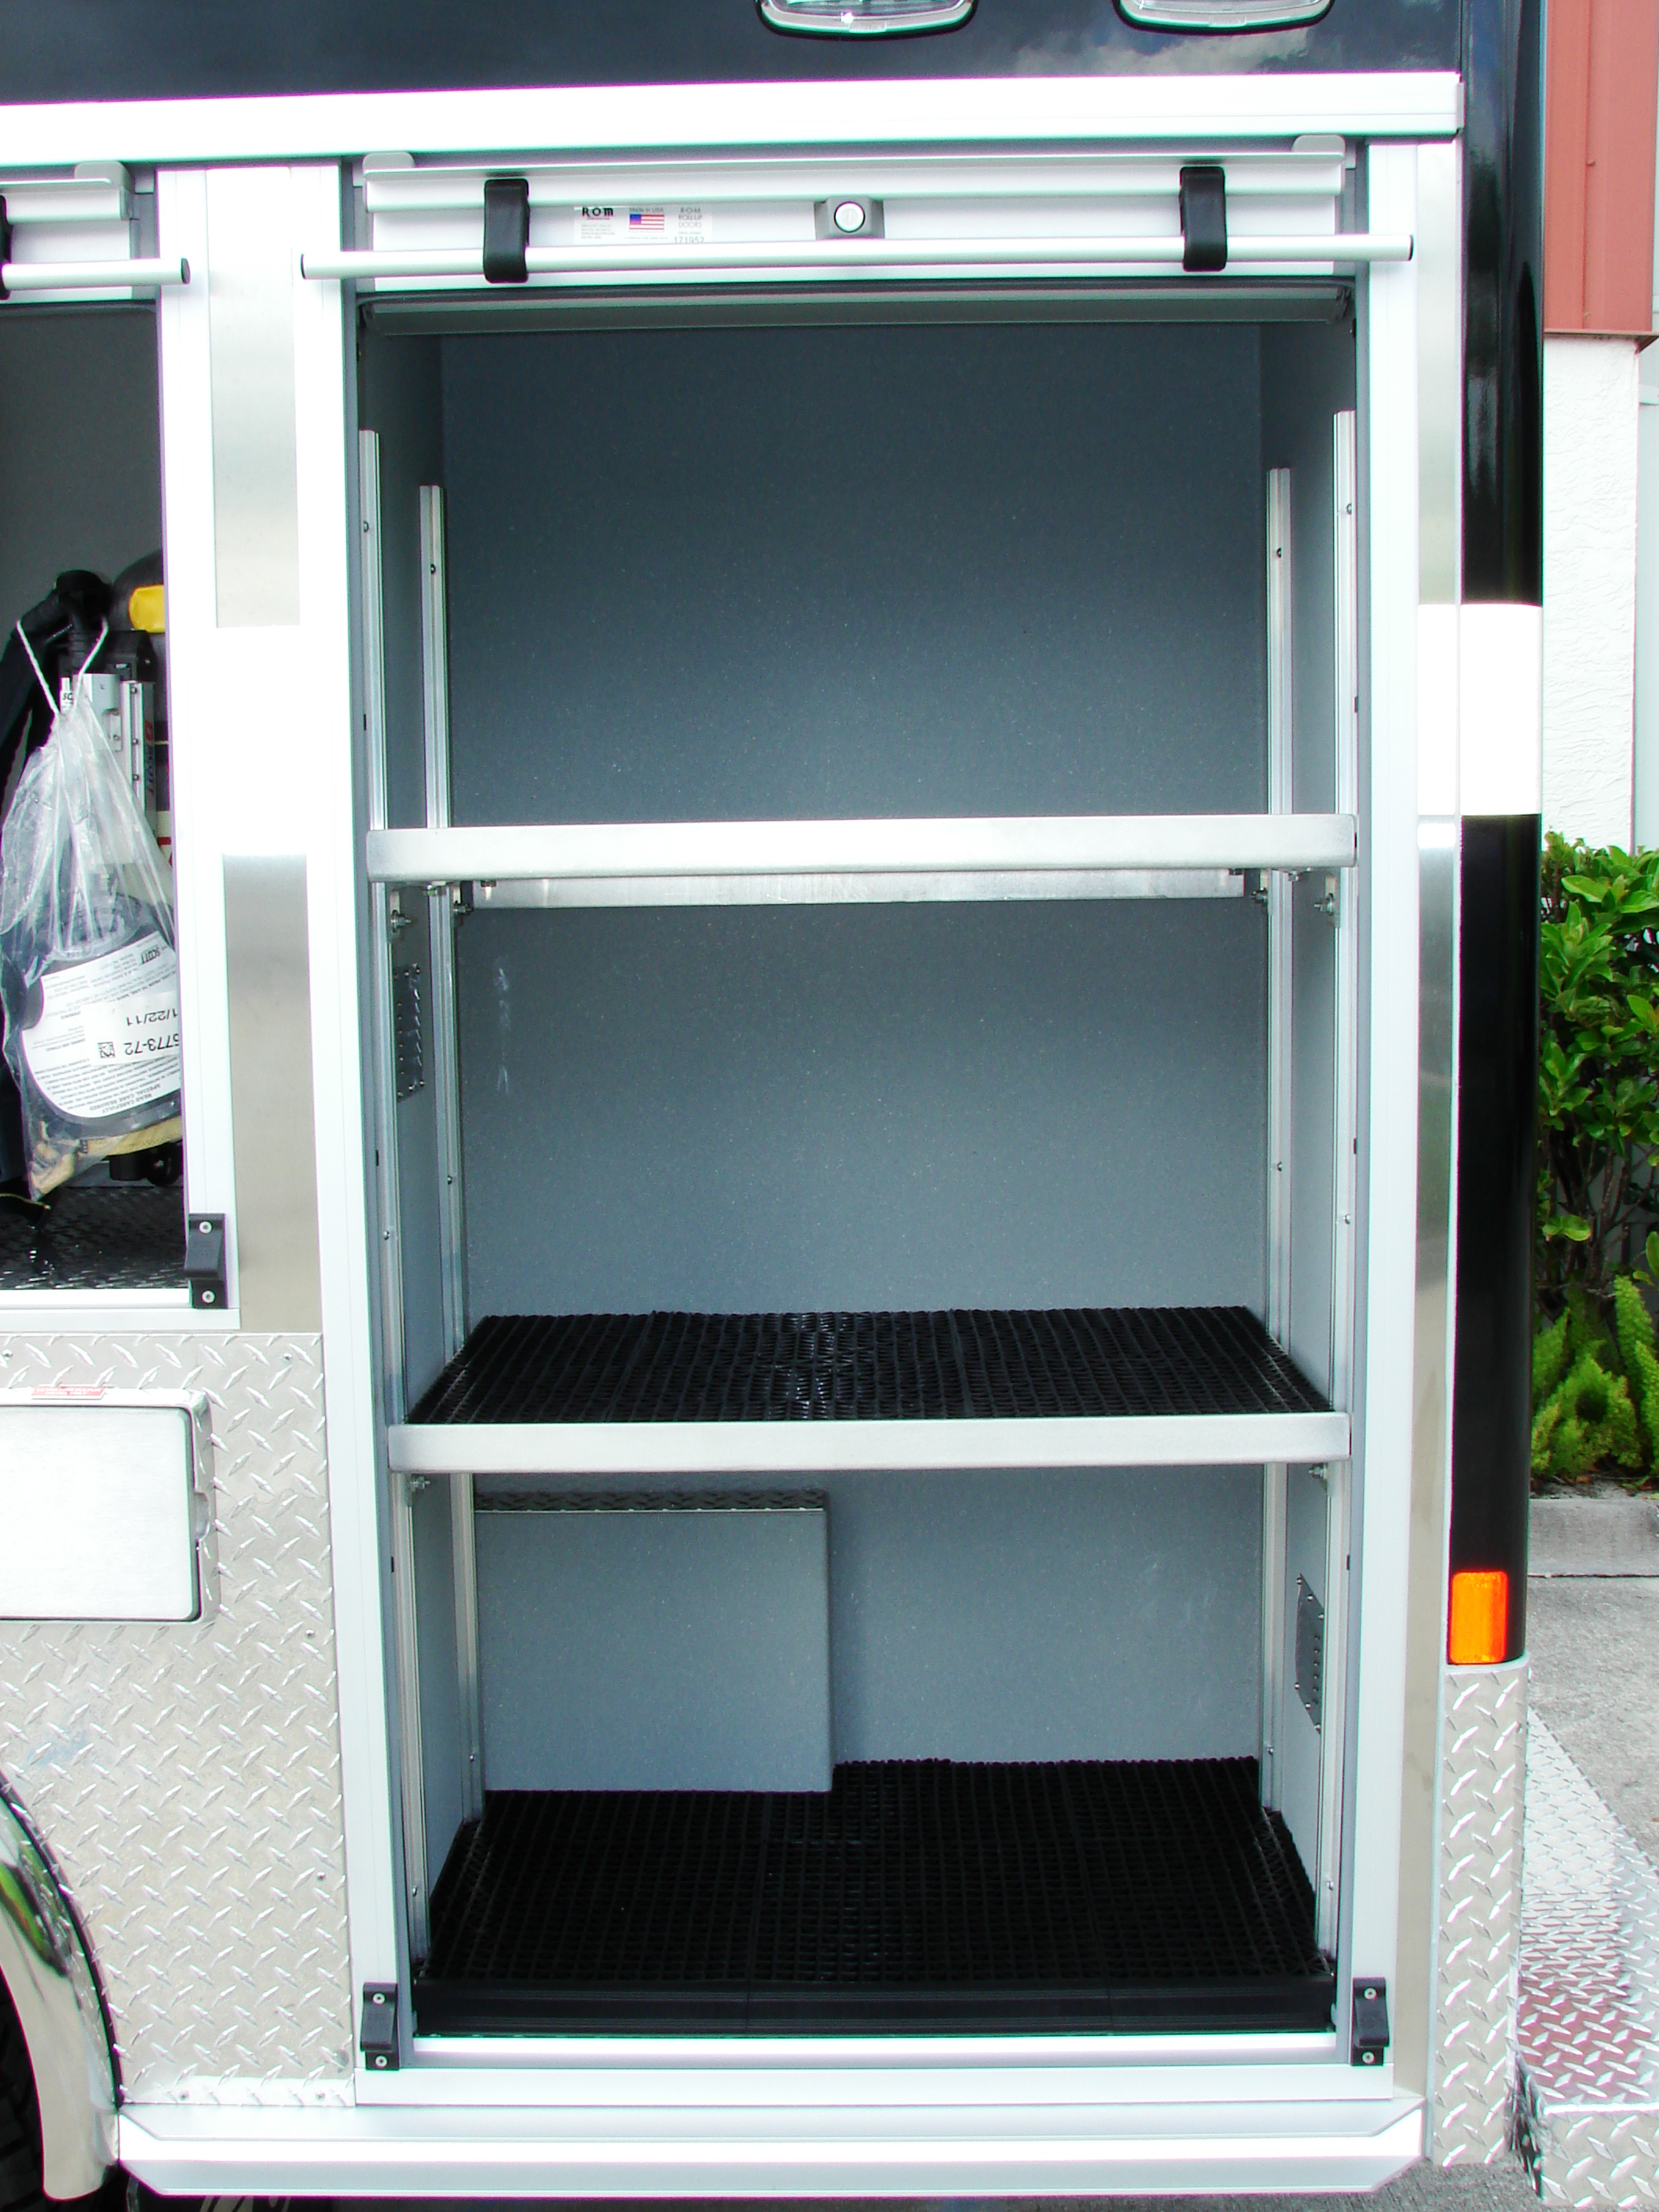 12-Ft. Non-Walk-In Support Unit